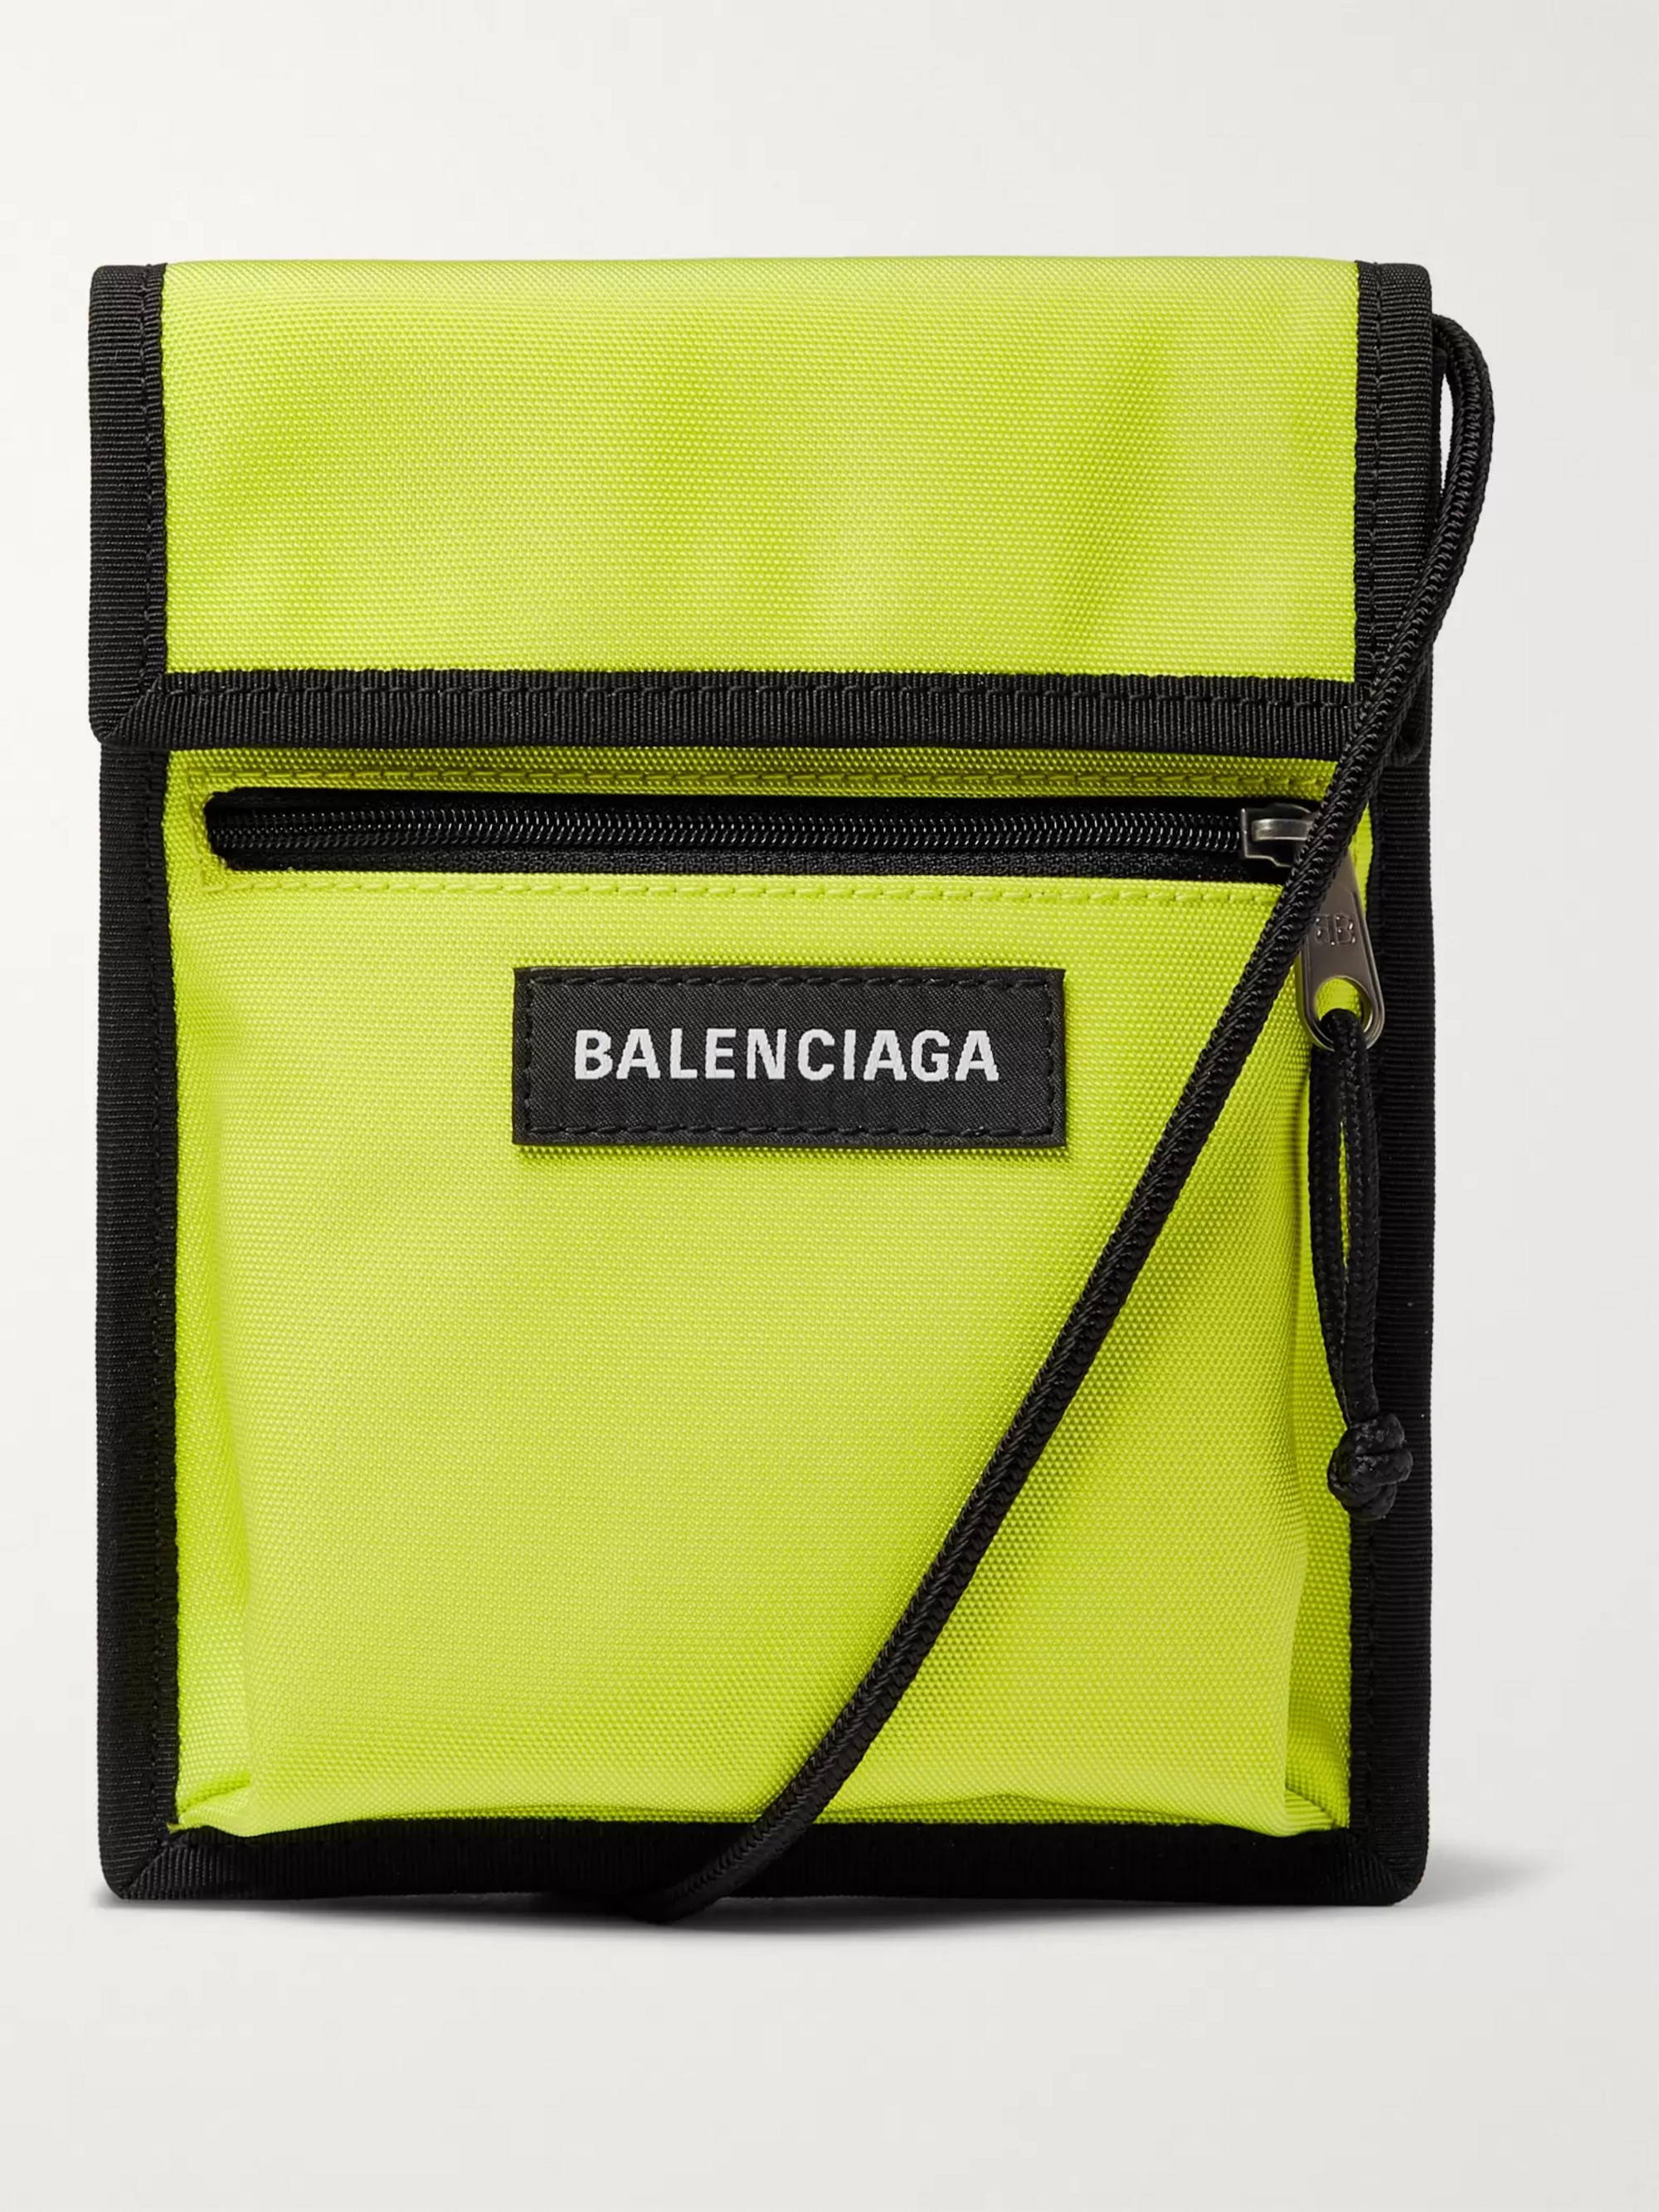 Balenciaga Explorer Canvas Messenger Bag